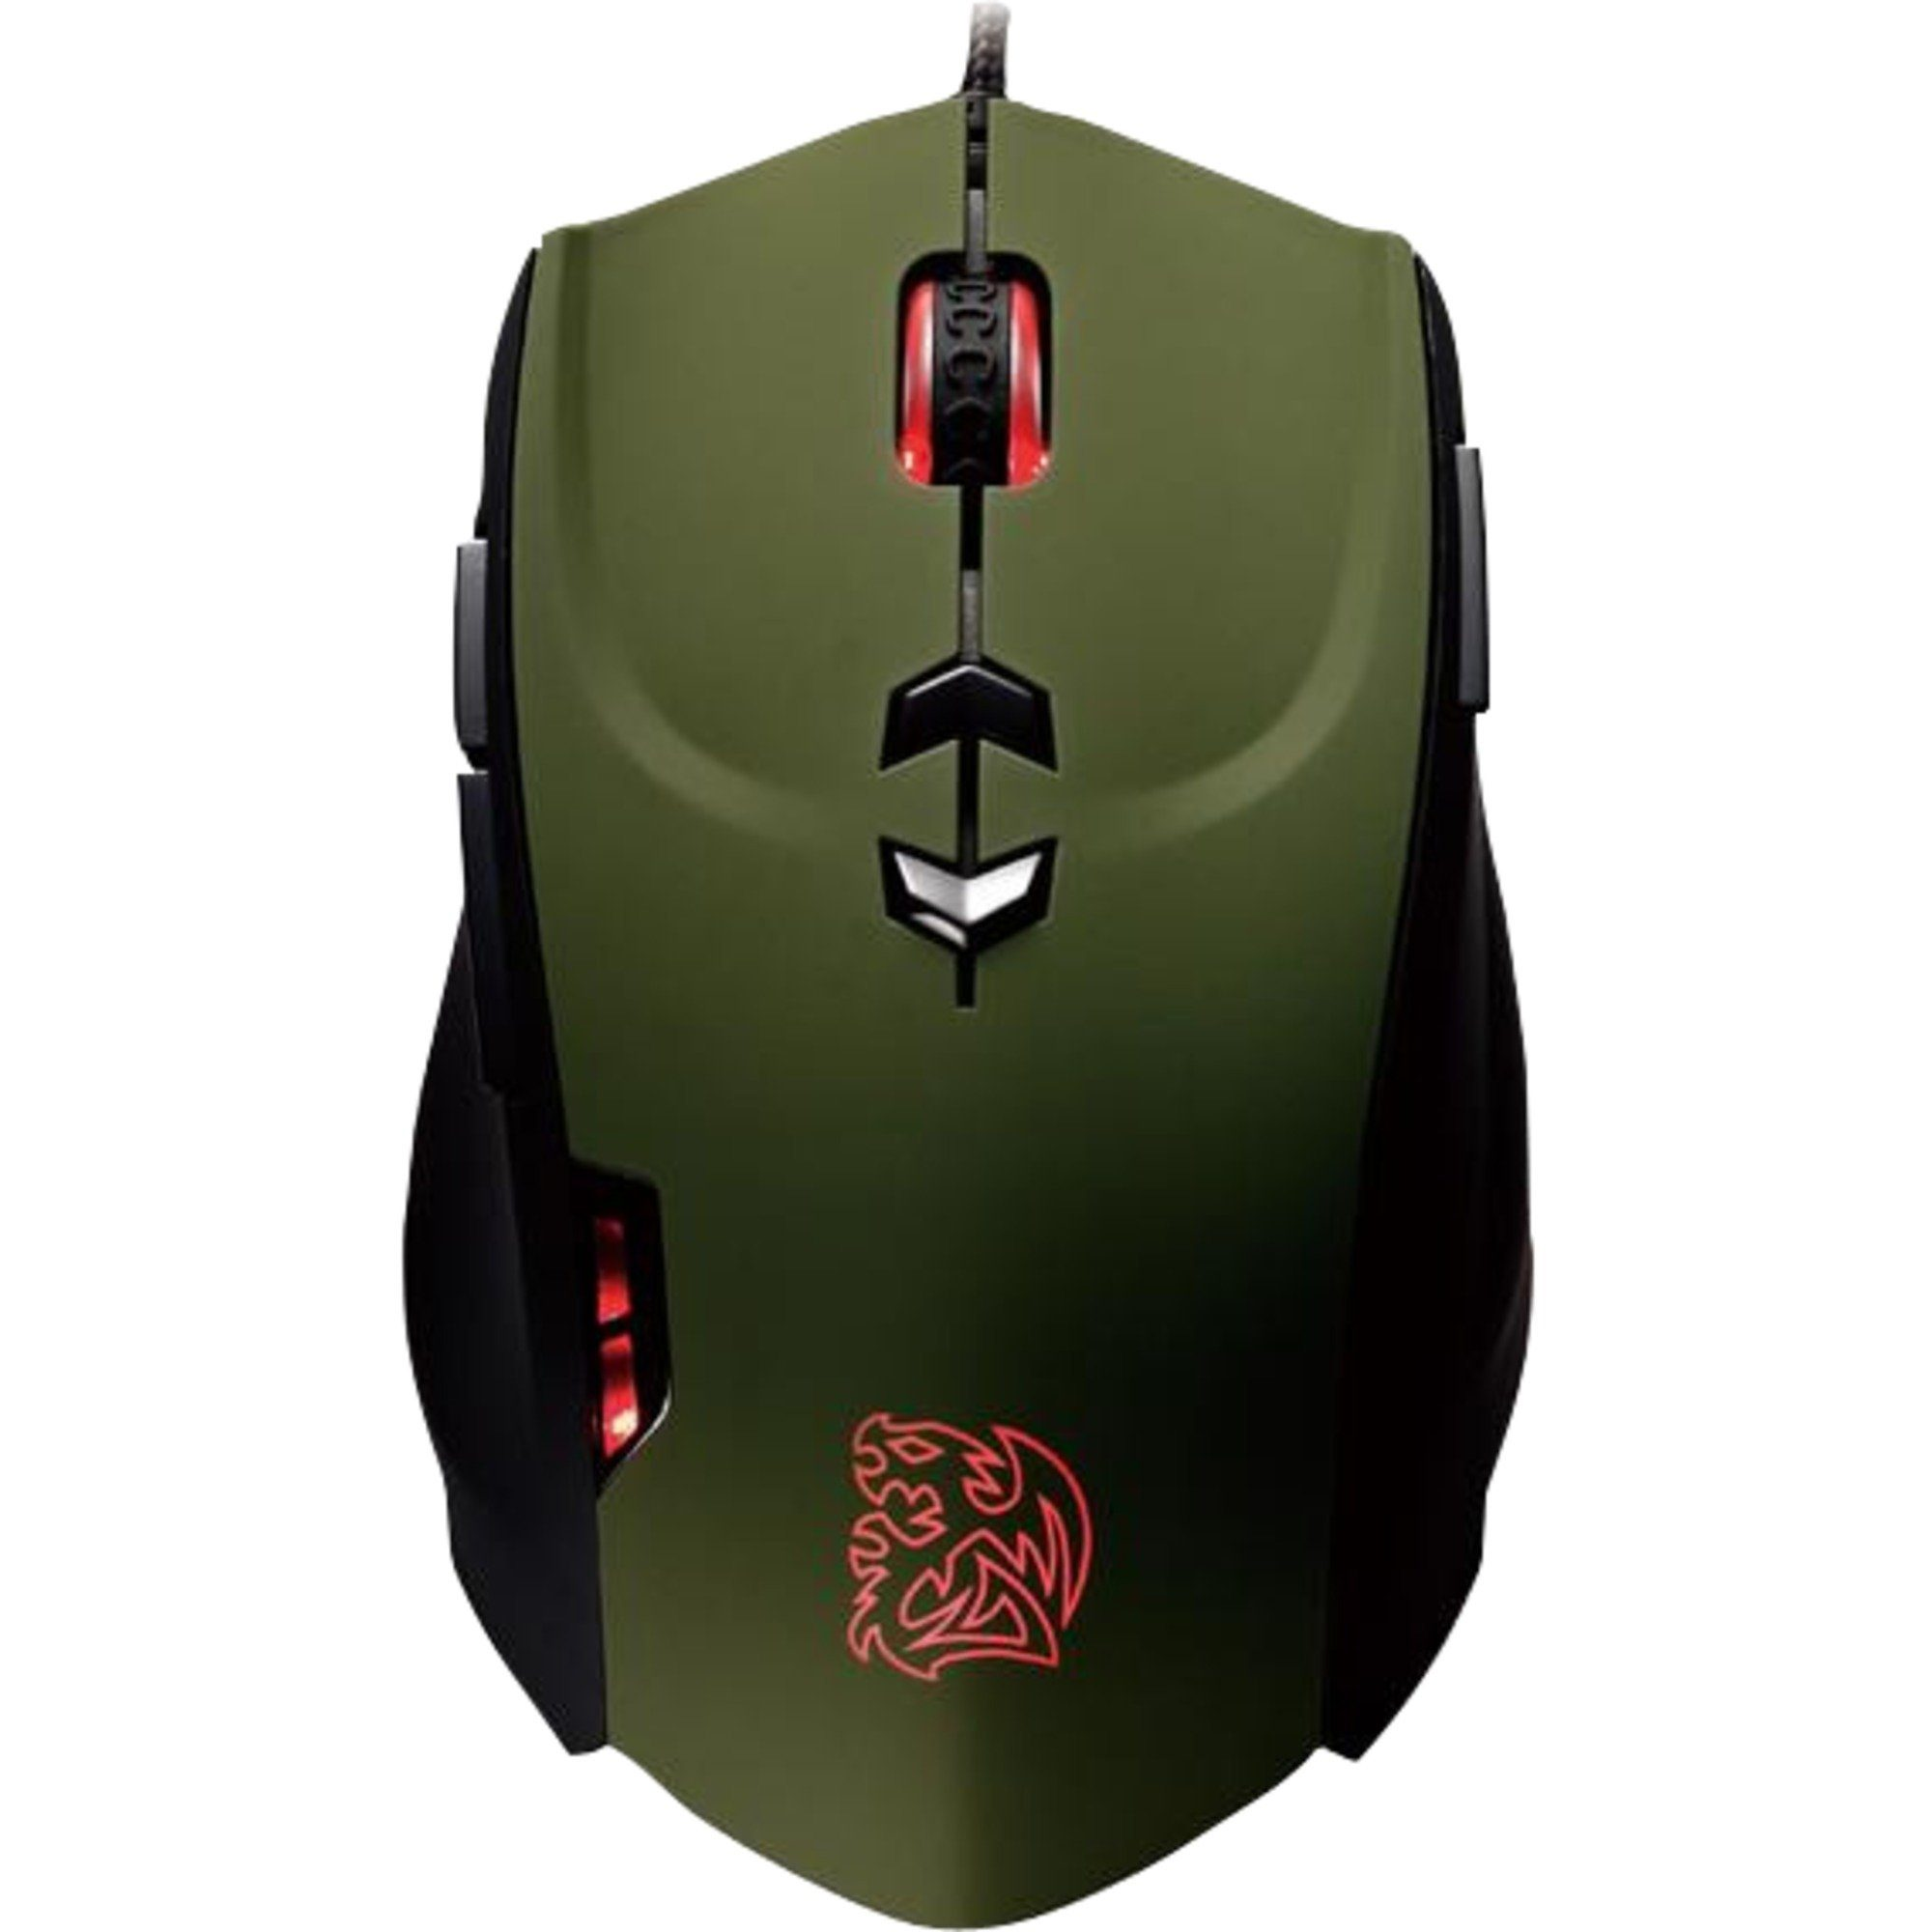 Tt eSPORTS Maus »Theron Battle Edition«